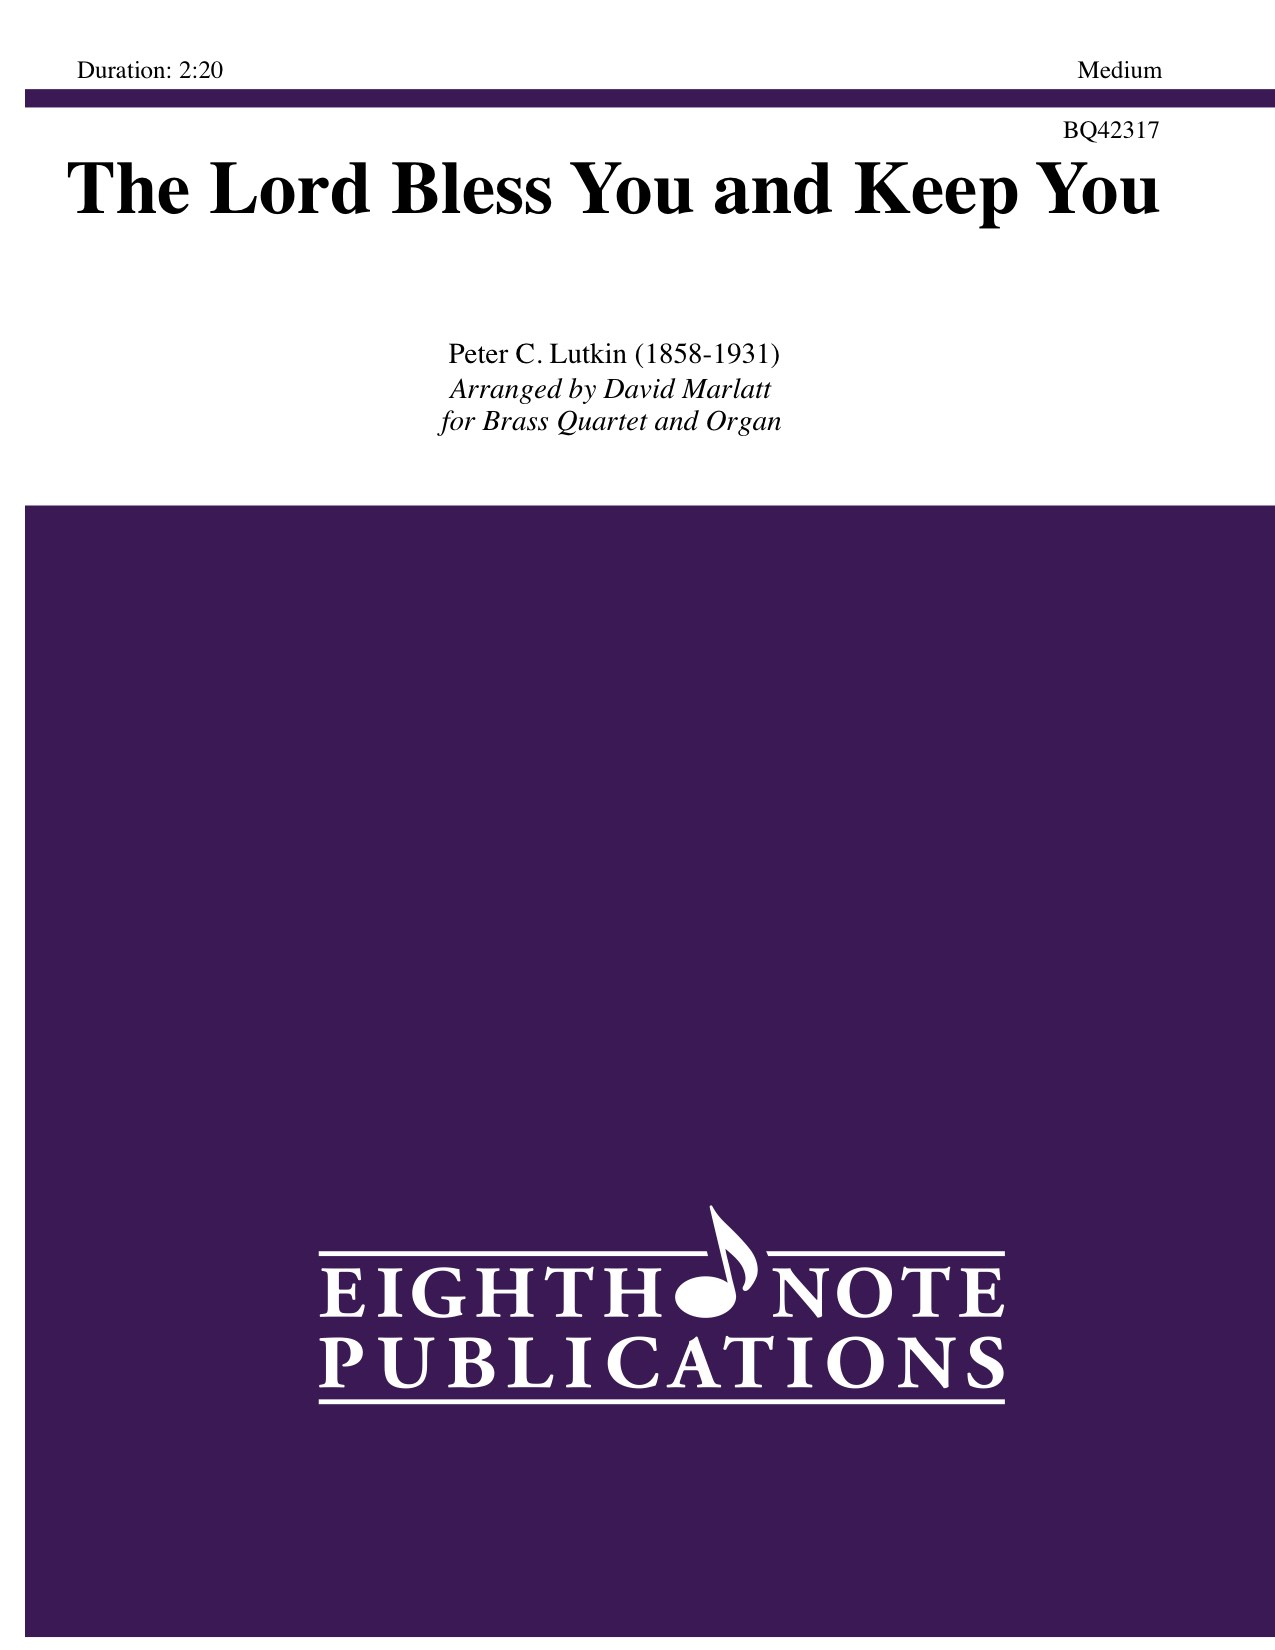 Lord Bless You and Keep You, The - Peter C. Lutkin